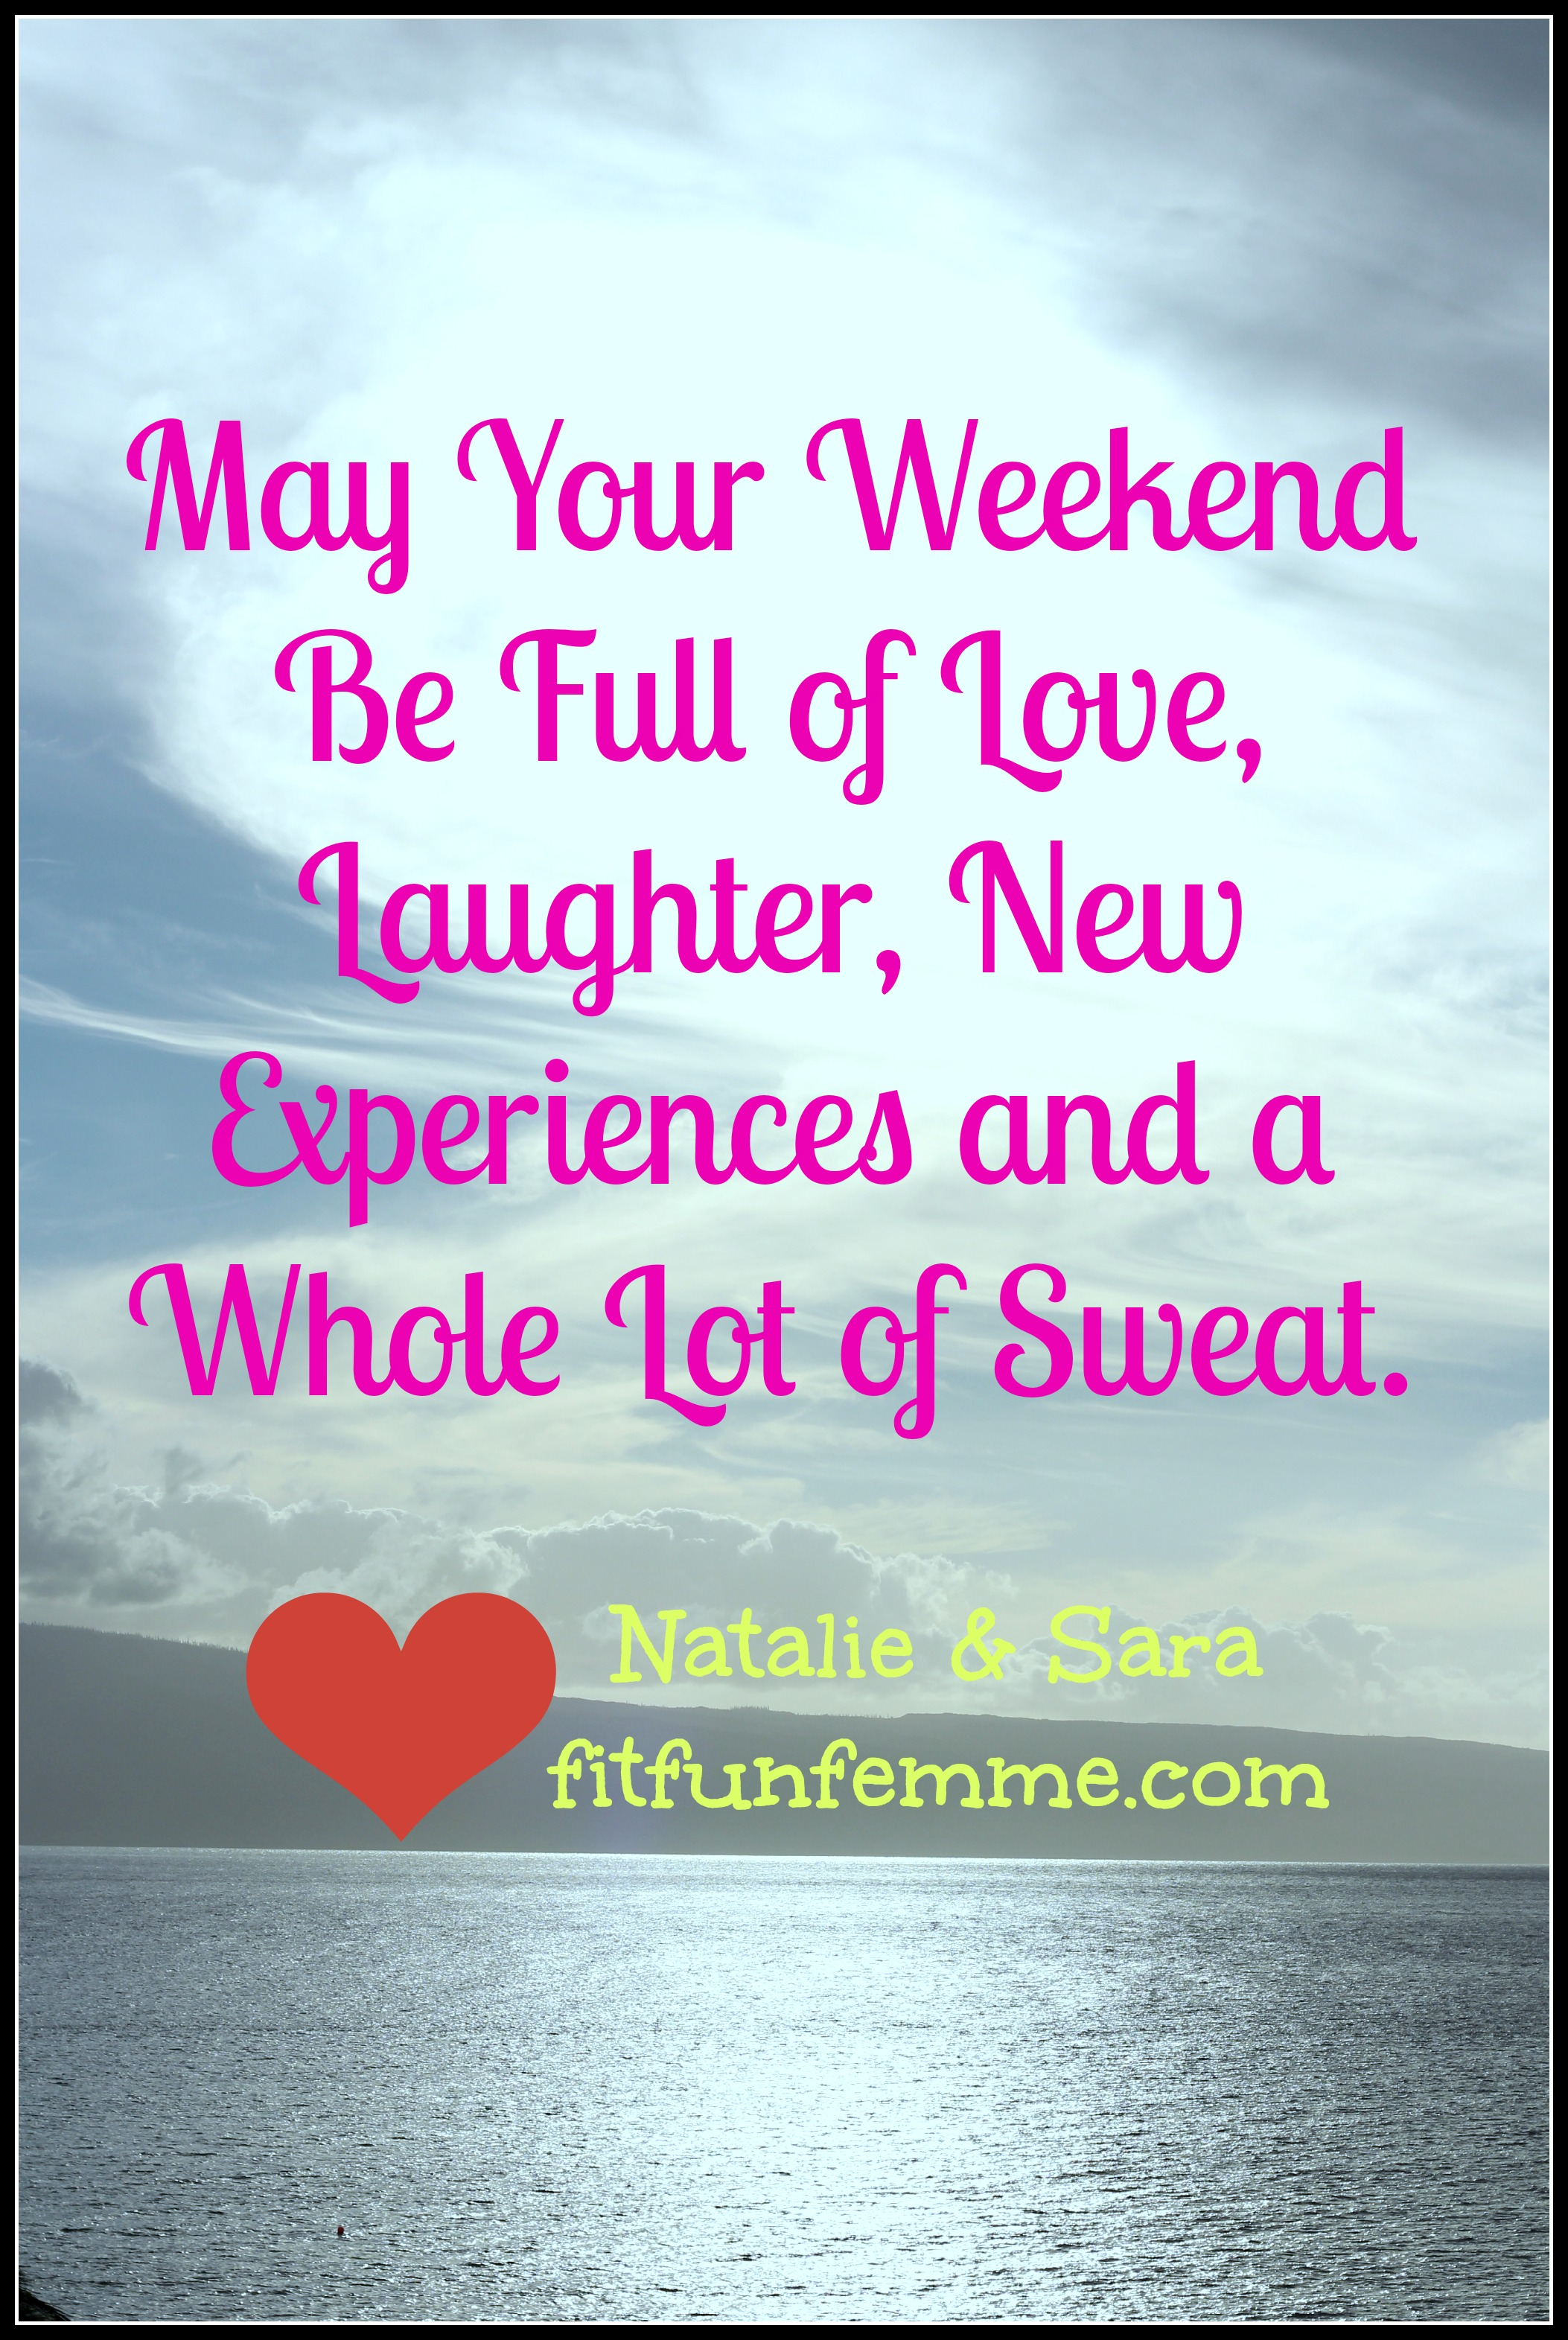 11 Day Weekend Quotes. QuotesGram